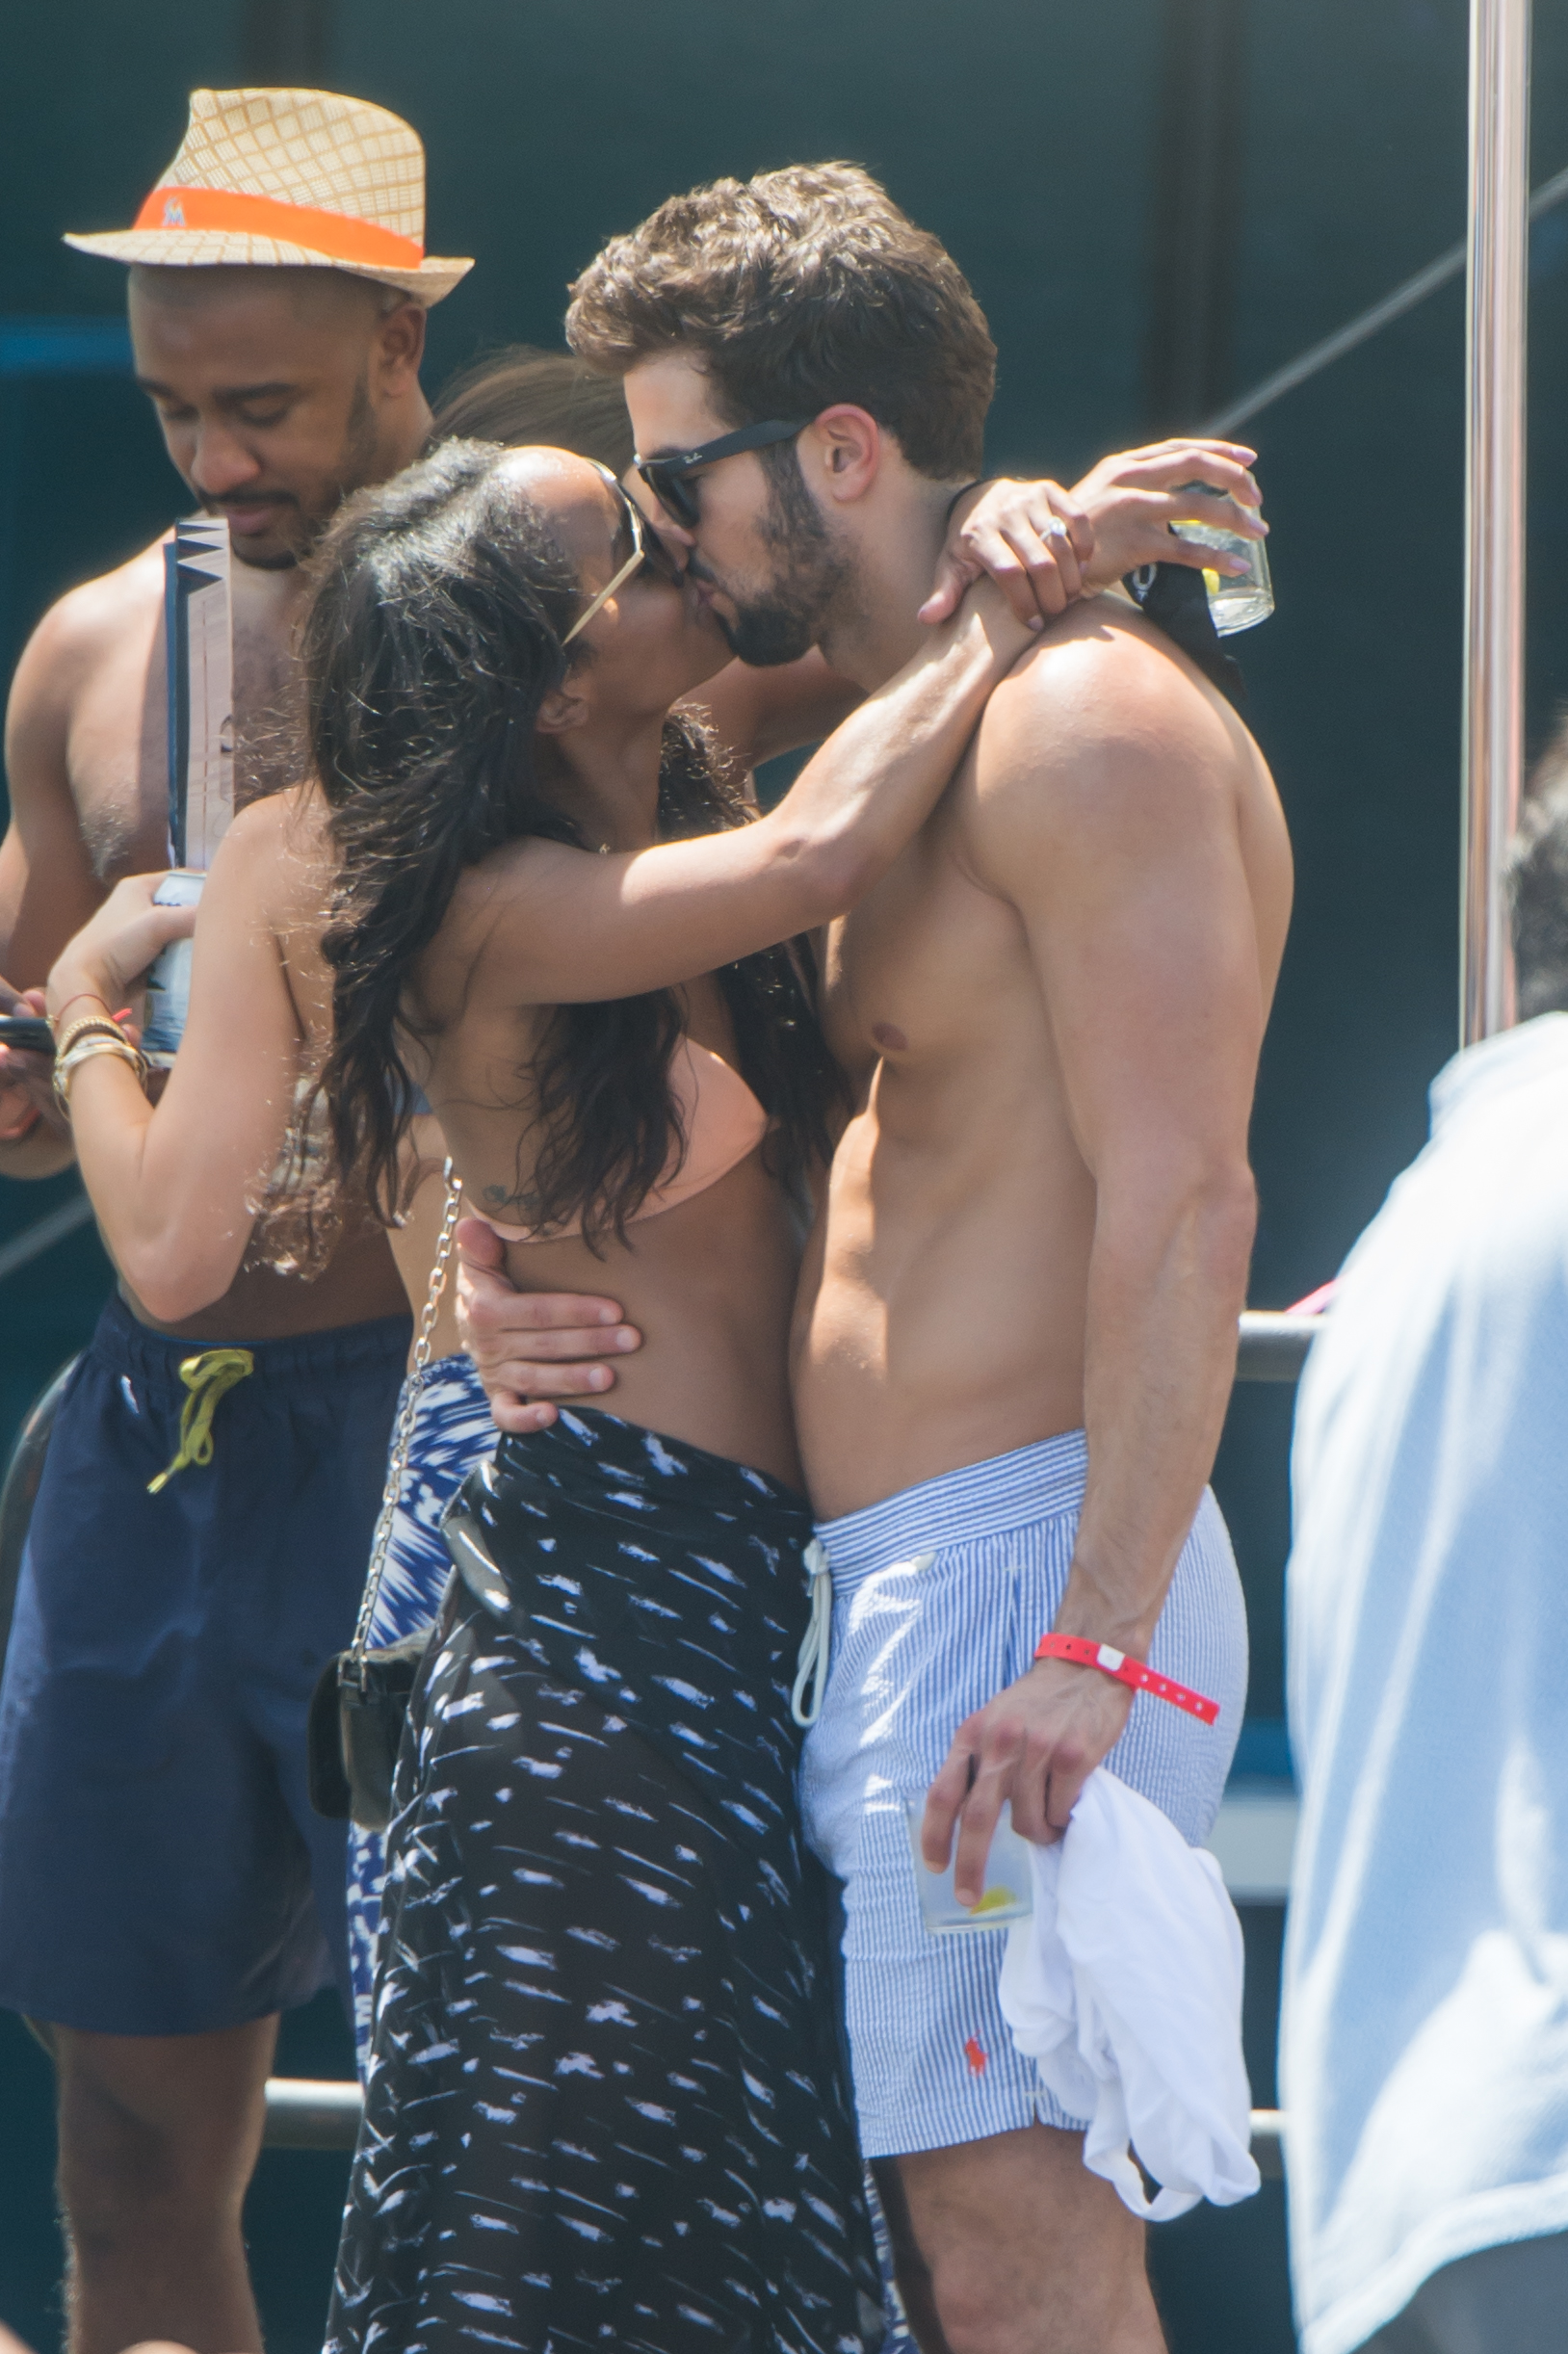 Bachelorette Rachel Lindsay and her newly fiancee Bryan Abasolo are seen at a pool party in Miami Beach. The two were joined by friends and were looking deeply in love while kissing each other under the Florida sun.  <P>  <B>Ref: SPL1558419  190817  </B><BR/> Picture by: AM/Splashnews<BR/> </P><P> <B>Splash News and Pictures</B><BR/> Los Angeles:	310-821-2666<BR/> New York:	212-619-2666<BR/> London:	870-934-2666<BR/> photodesk@splashnews.com<BR/> </P>